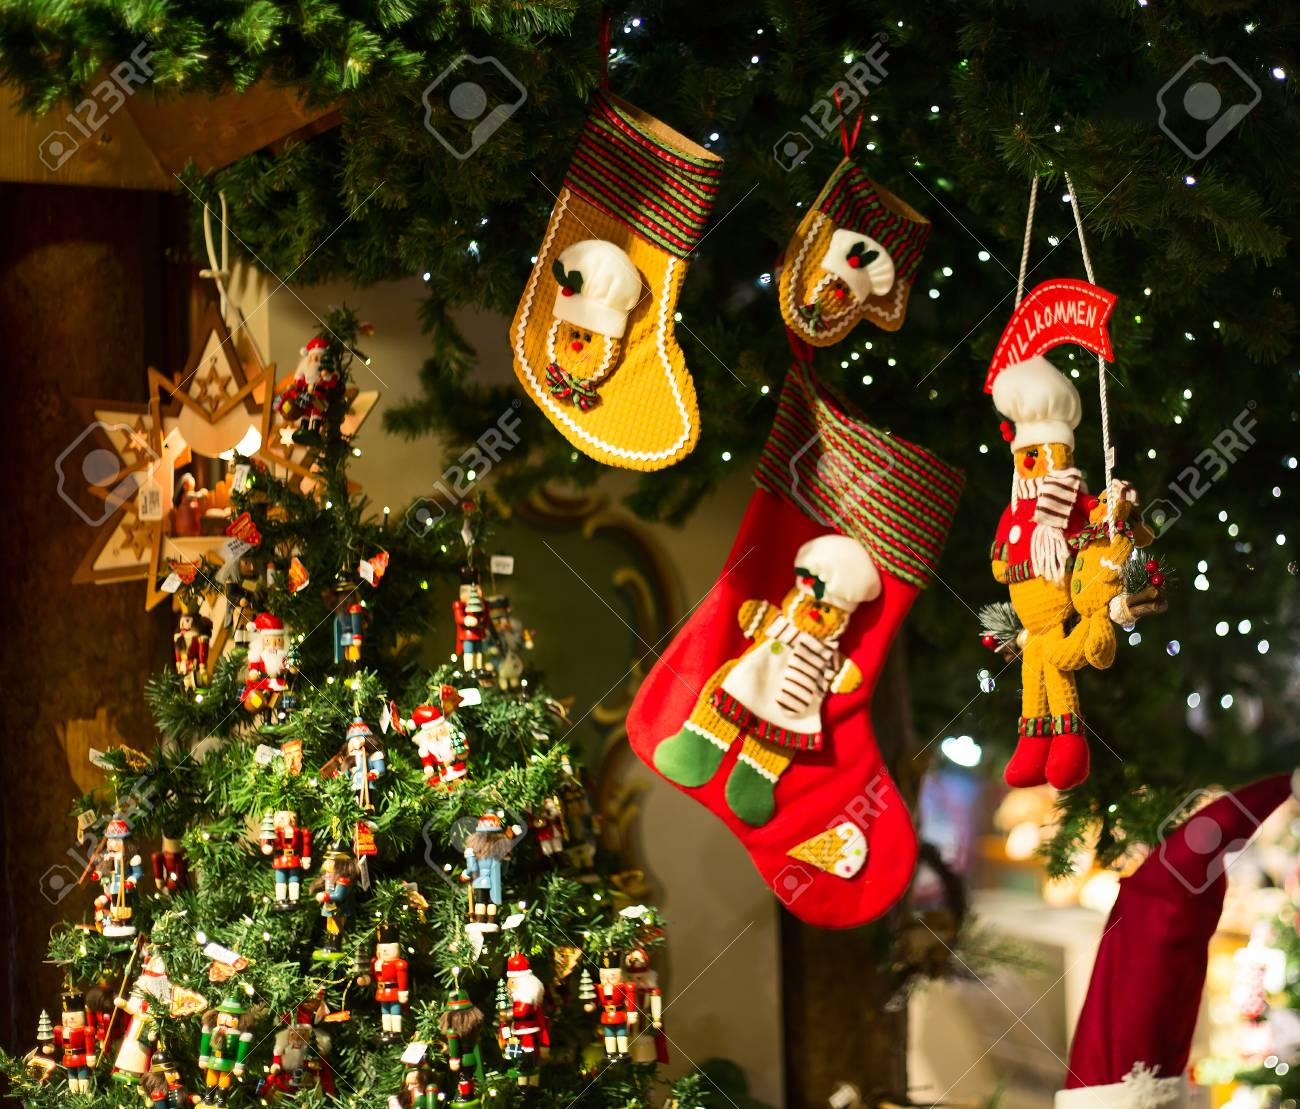 Christmas Decorations On The Market In Small European City Stock ...